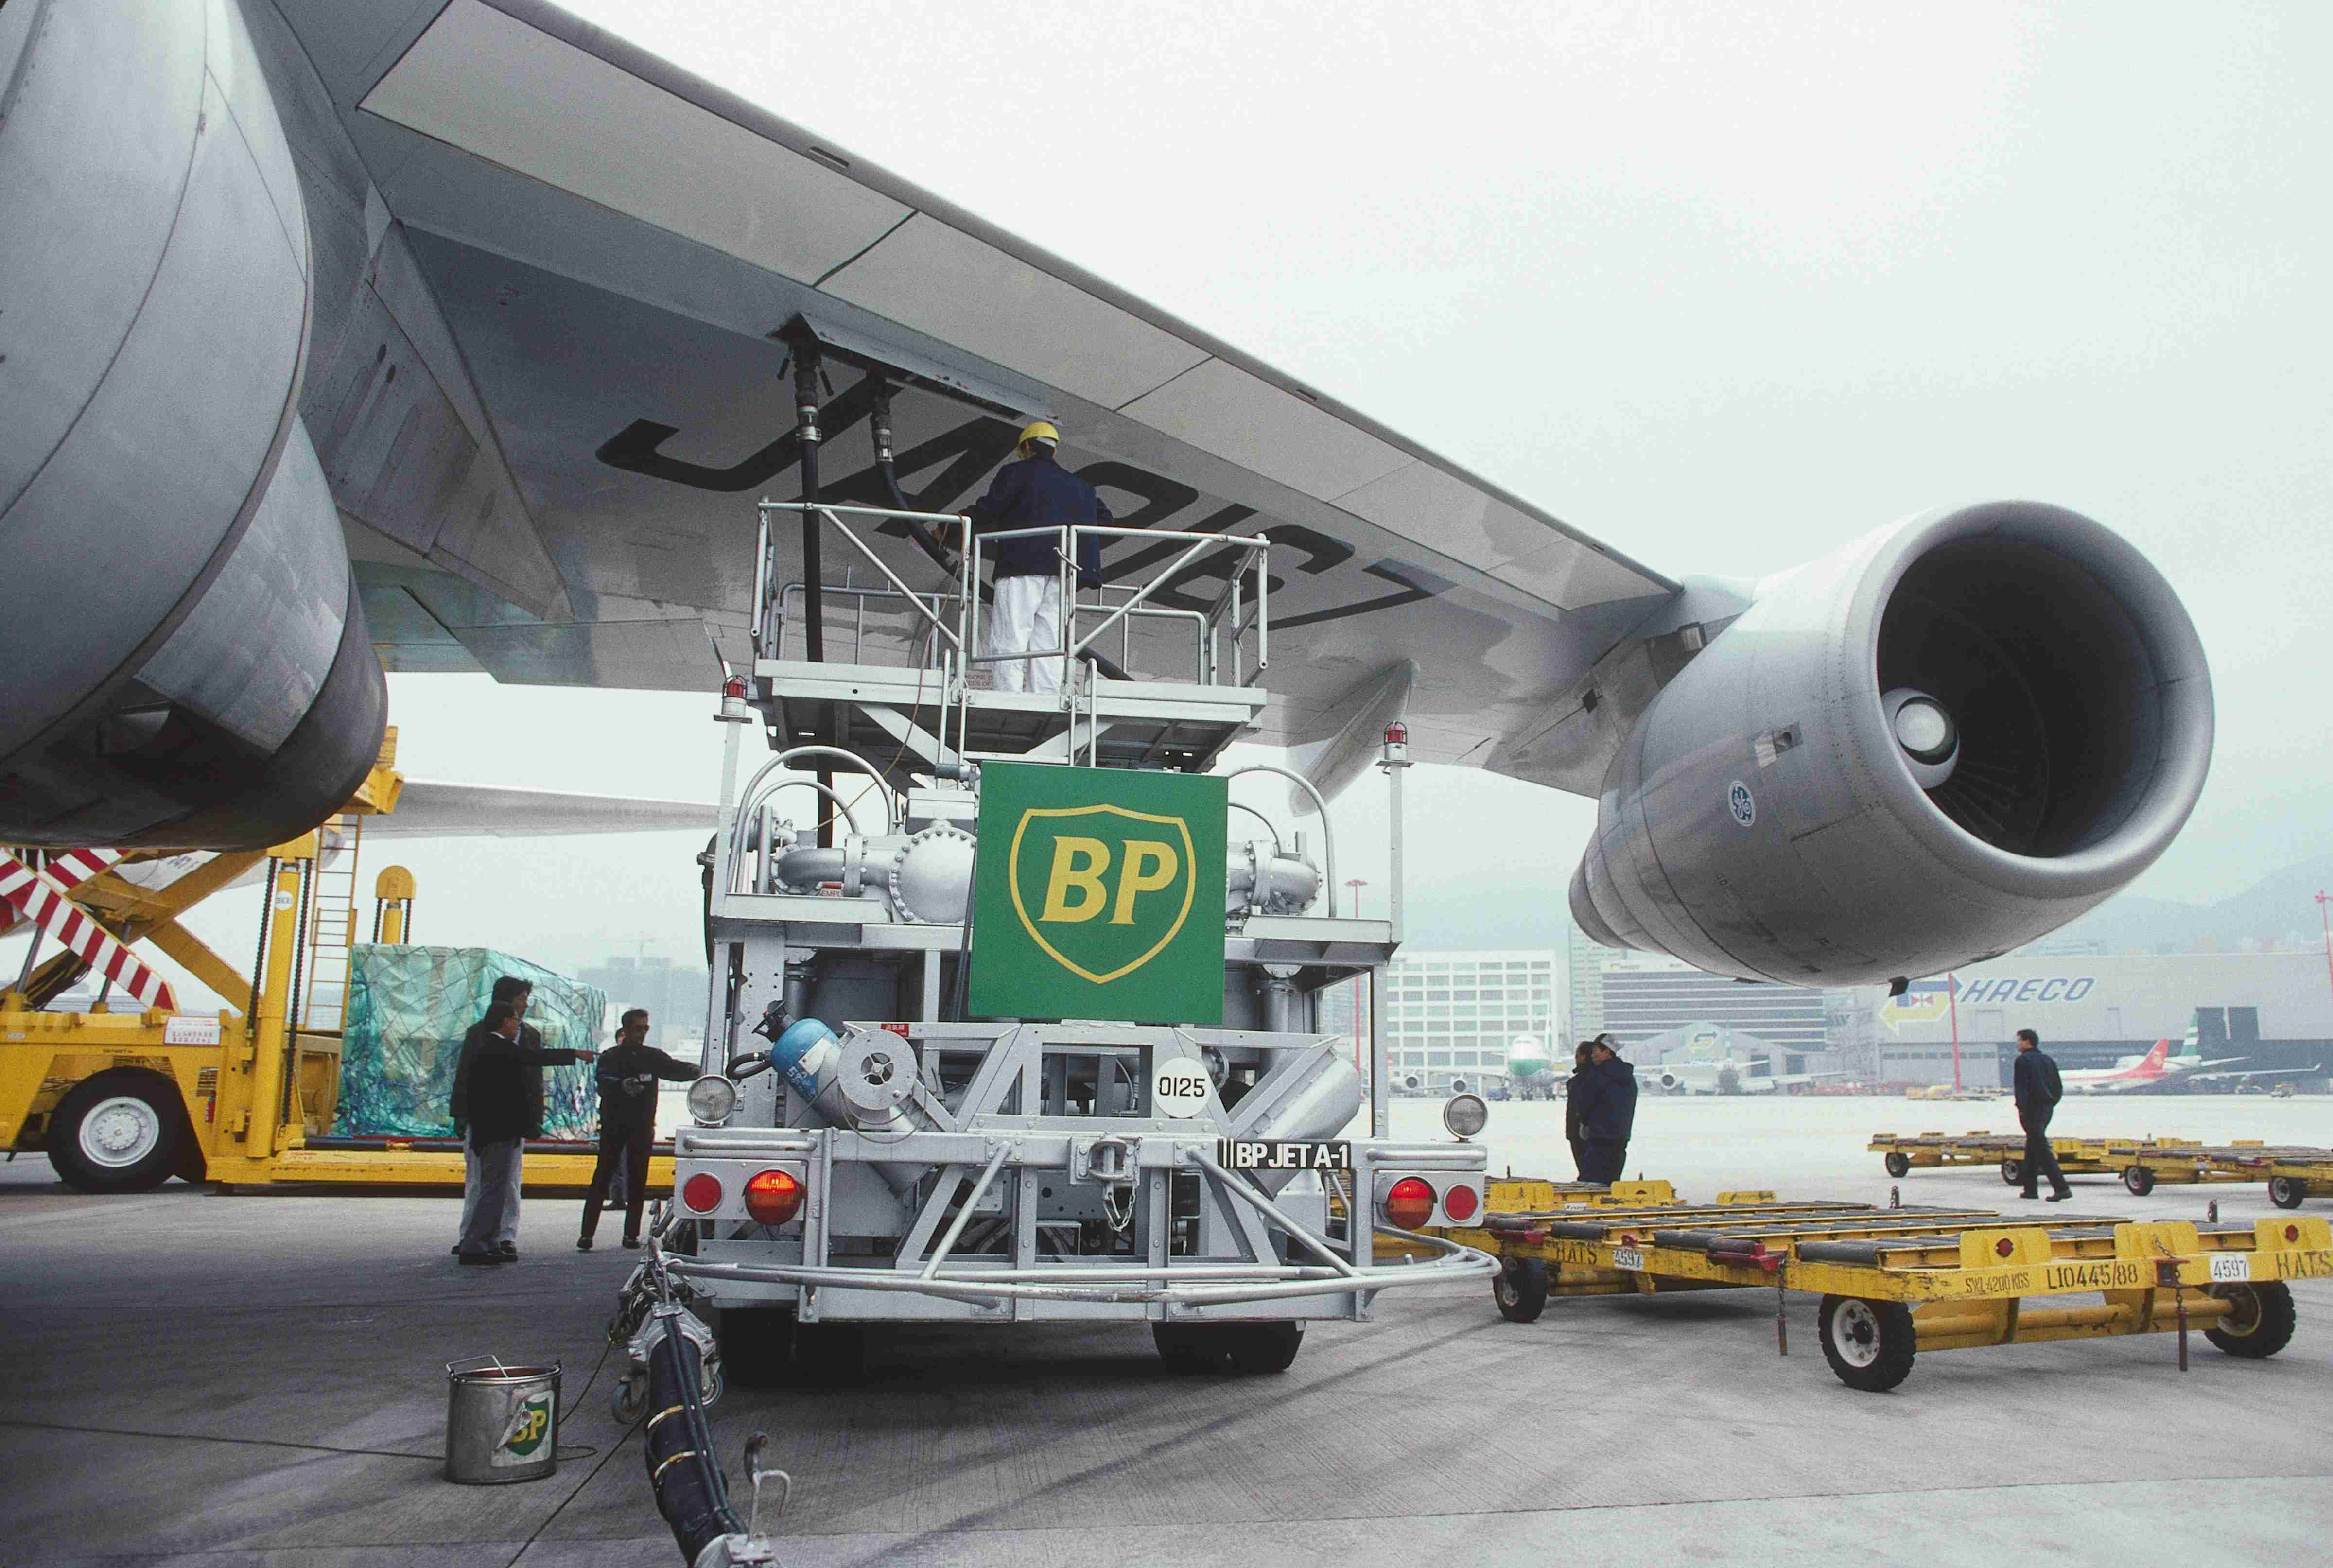 BP refuelling bowser under wing and a GE CF-6-50E2 engine intake of a Nippon Cargo Airlines Boeing 747-200F with cargo being loaded behind. (Photo by: aviation-images.com/Universal Images Group via Getty Images)